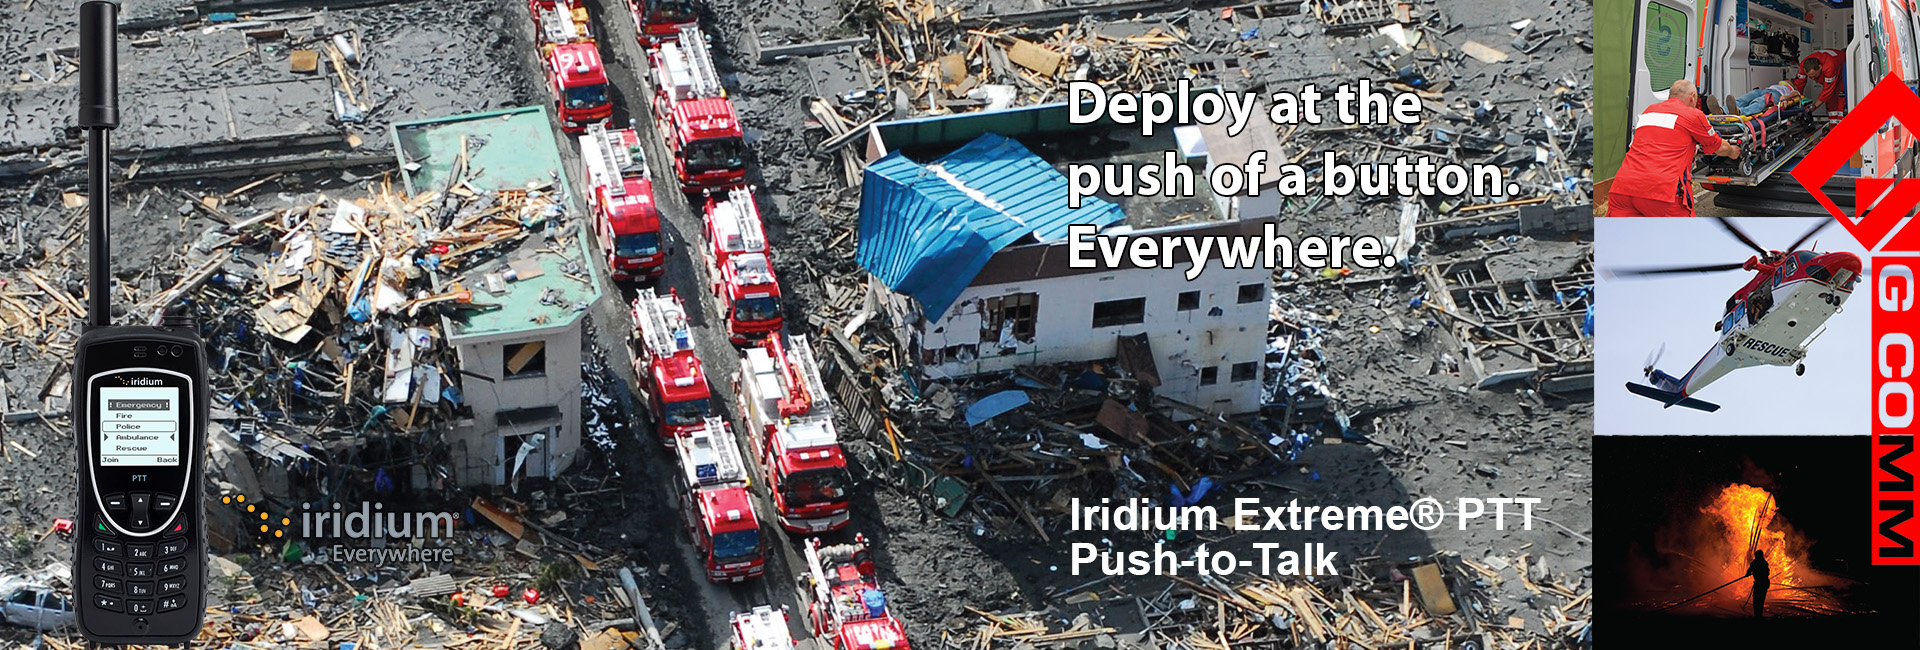 Iridium PTT disaster background